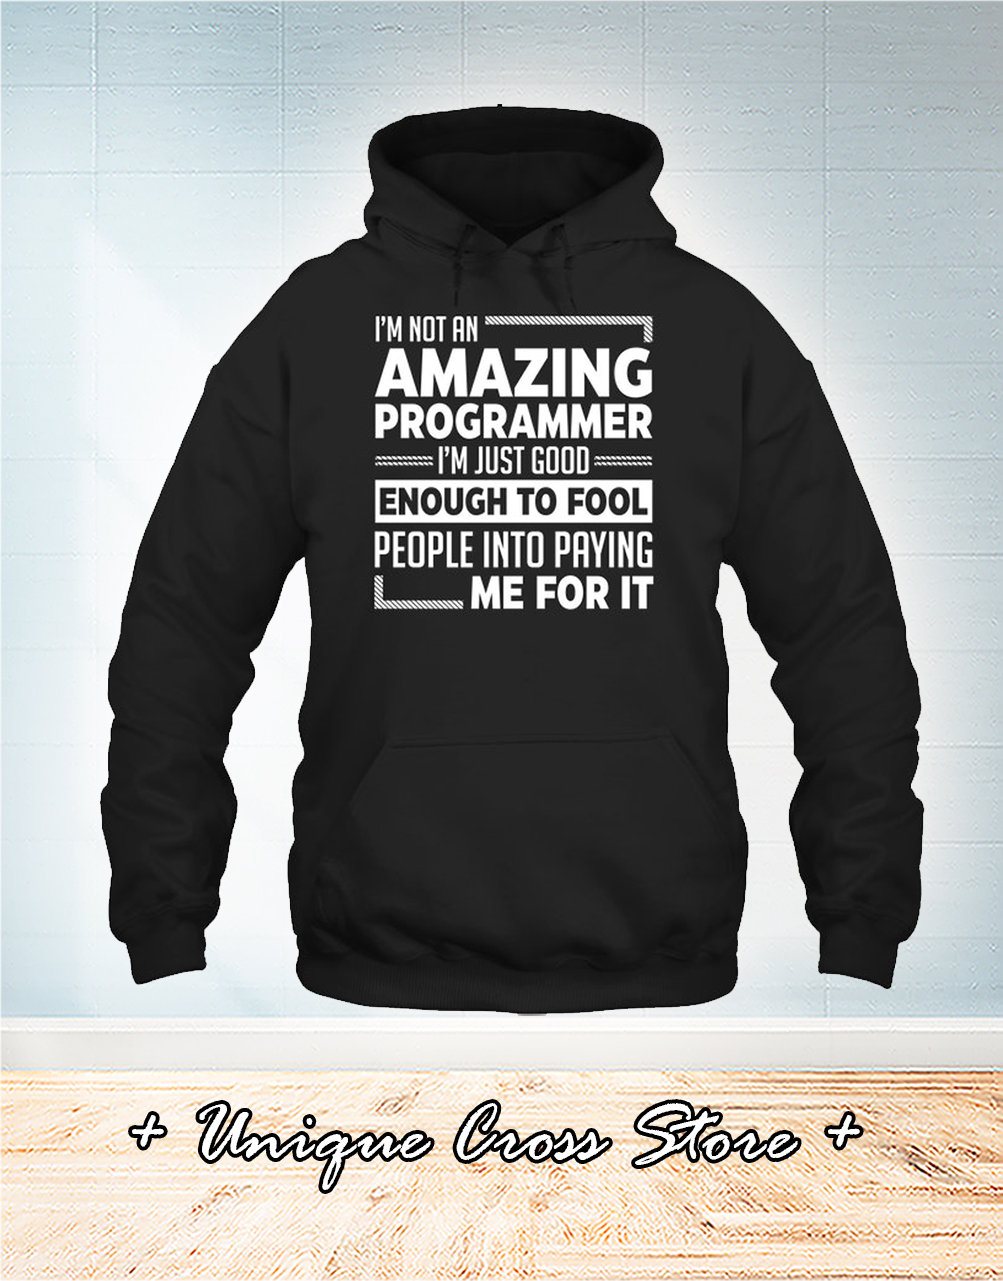 I'm Not An Amazing Programmer hoodie